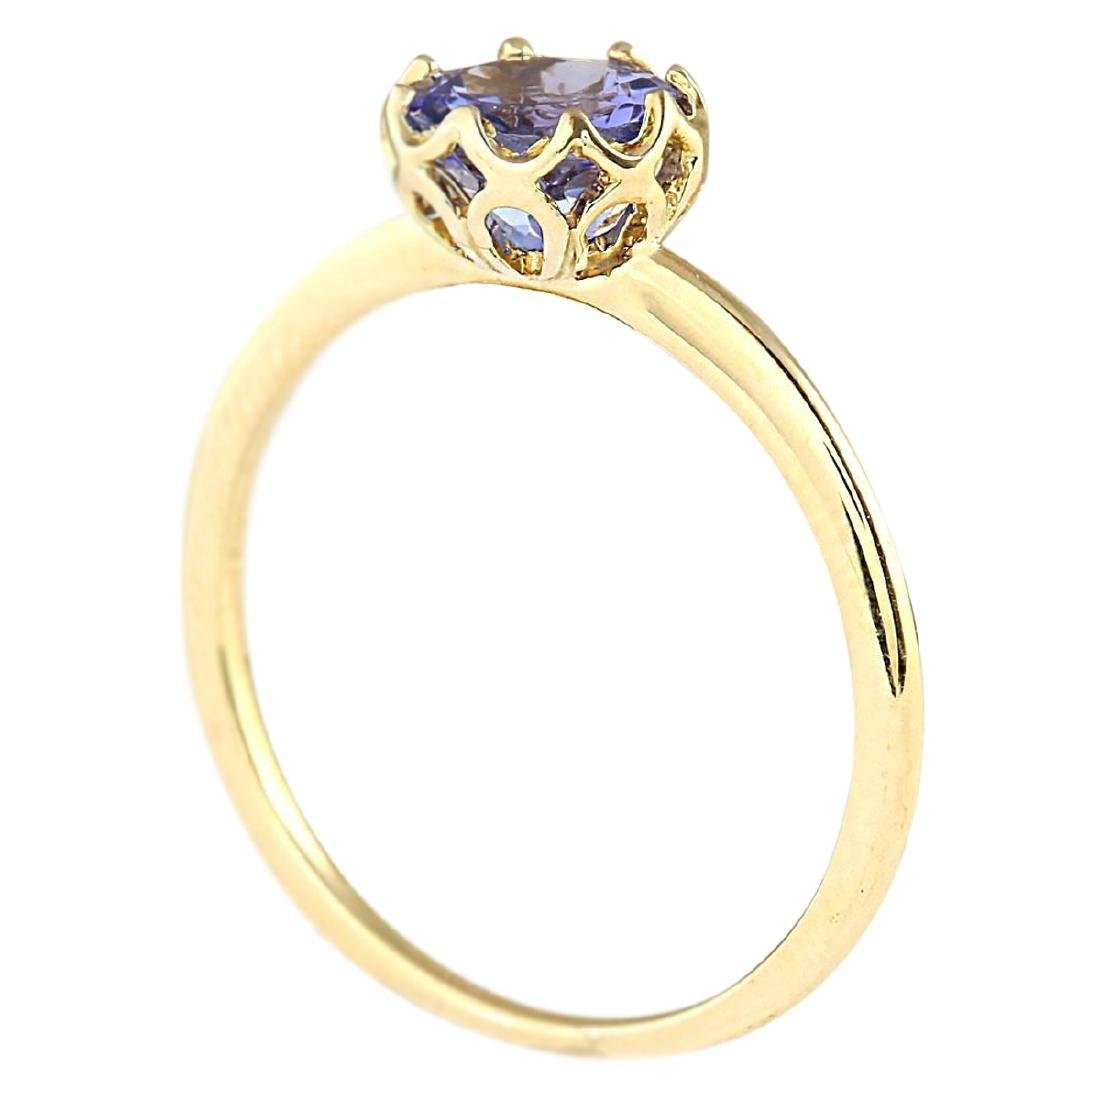 1.35 CTW Natural Tanzanite Ring In 18K Yellow Gold - 3